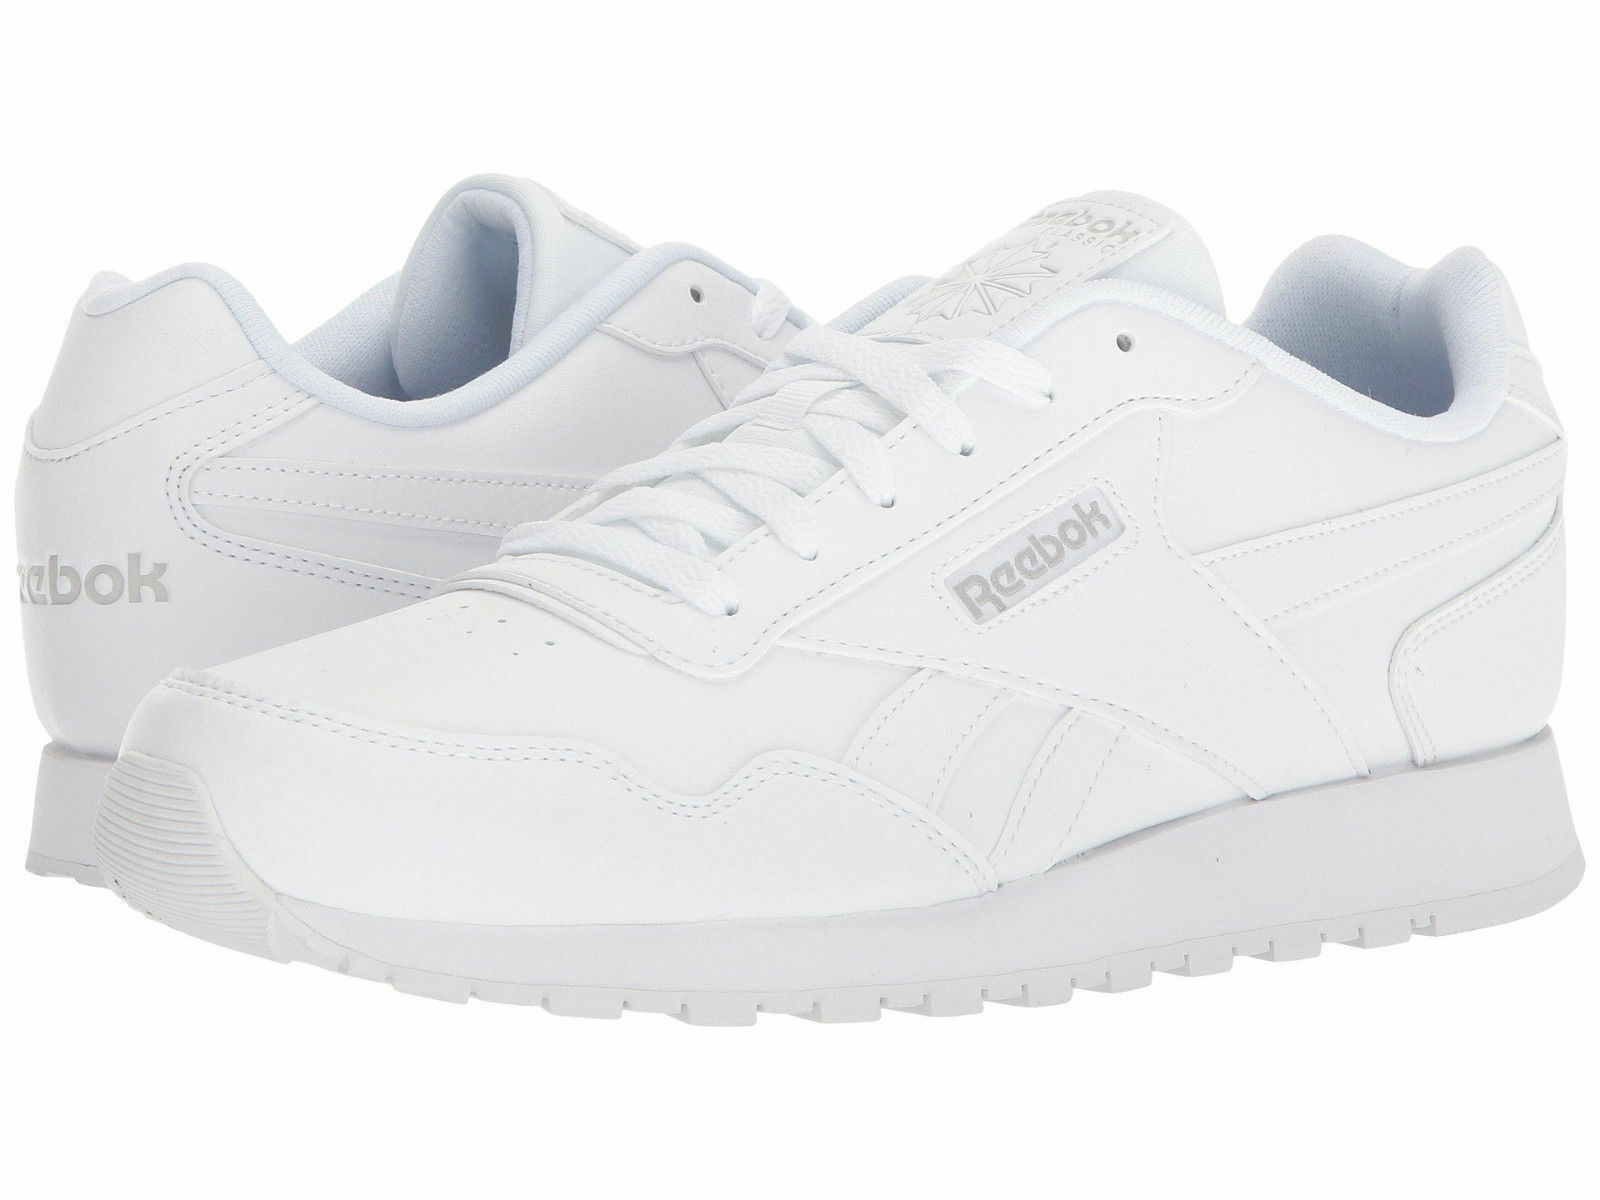 hommes Reebok Classic Classic Classic Harman Run Leather CM9202 blanc Steel 100%Authentic Brand New ecee2c